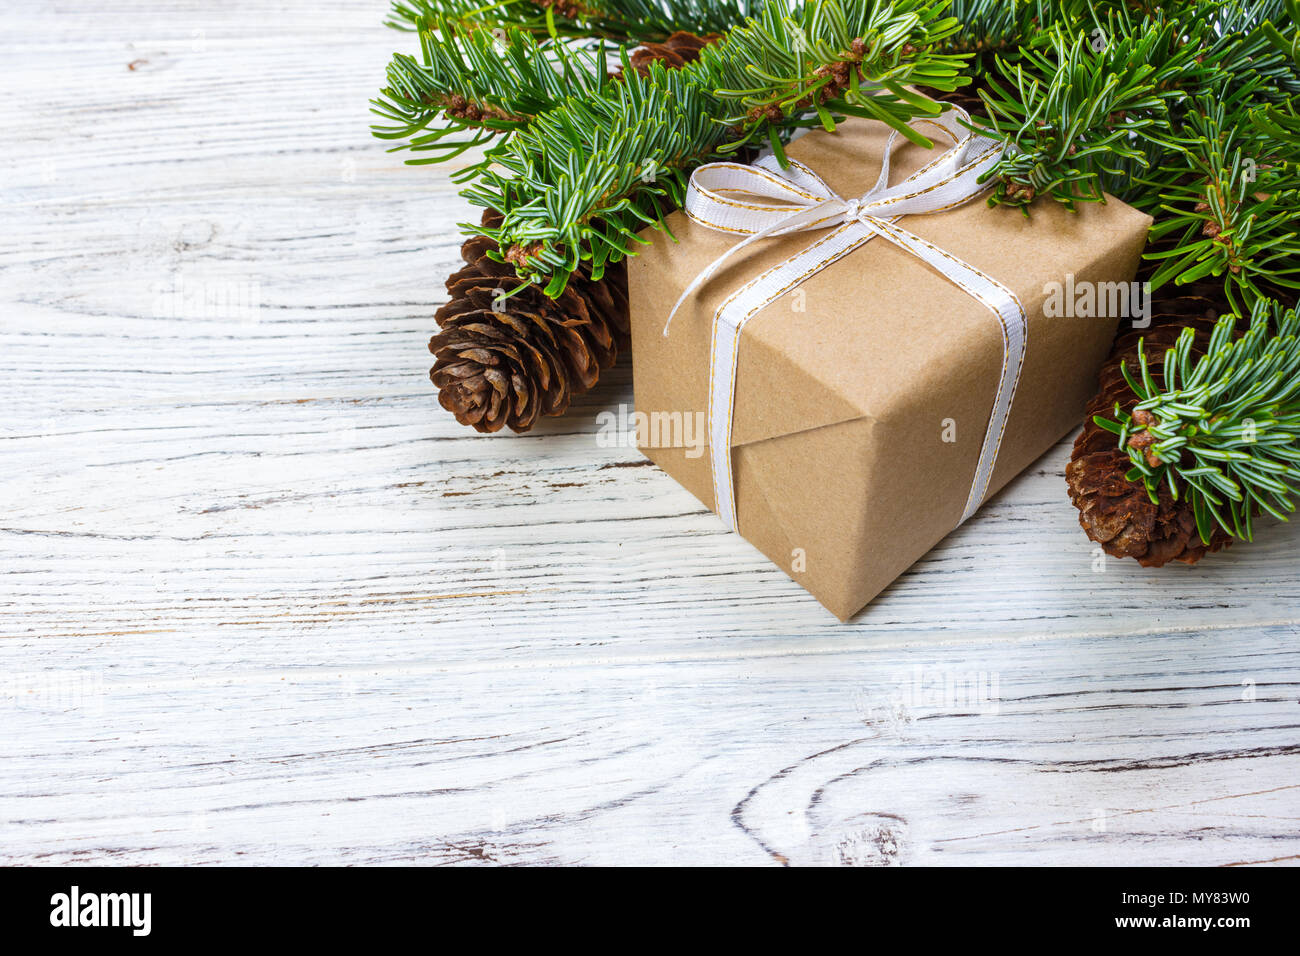 Christmas gift box on the white wooden table background,spruce branch,pine cones,frame,top view,space for text. - Stock Image